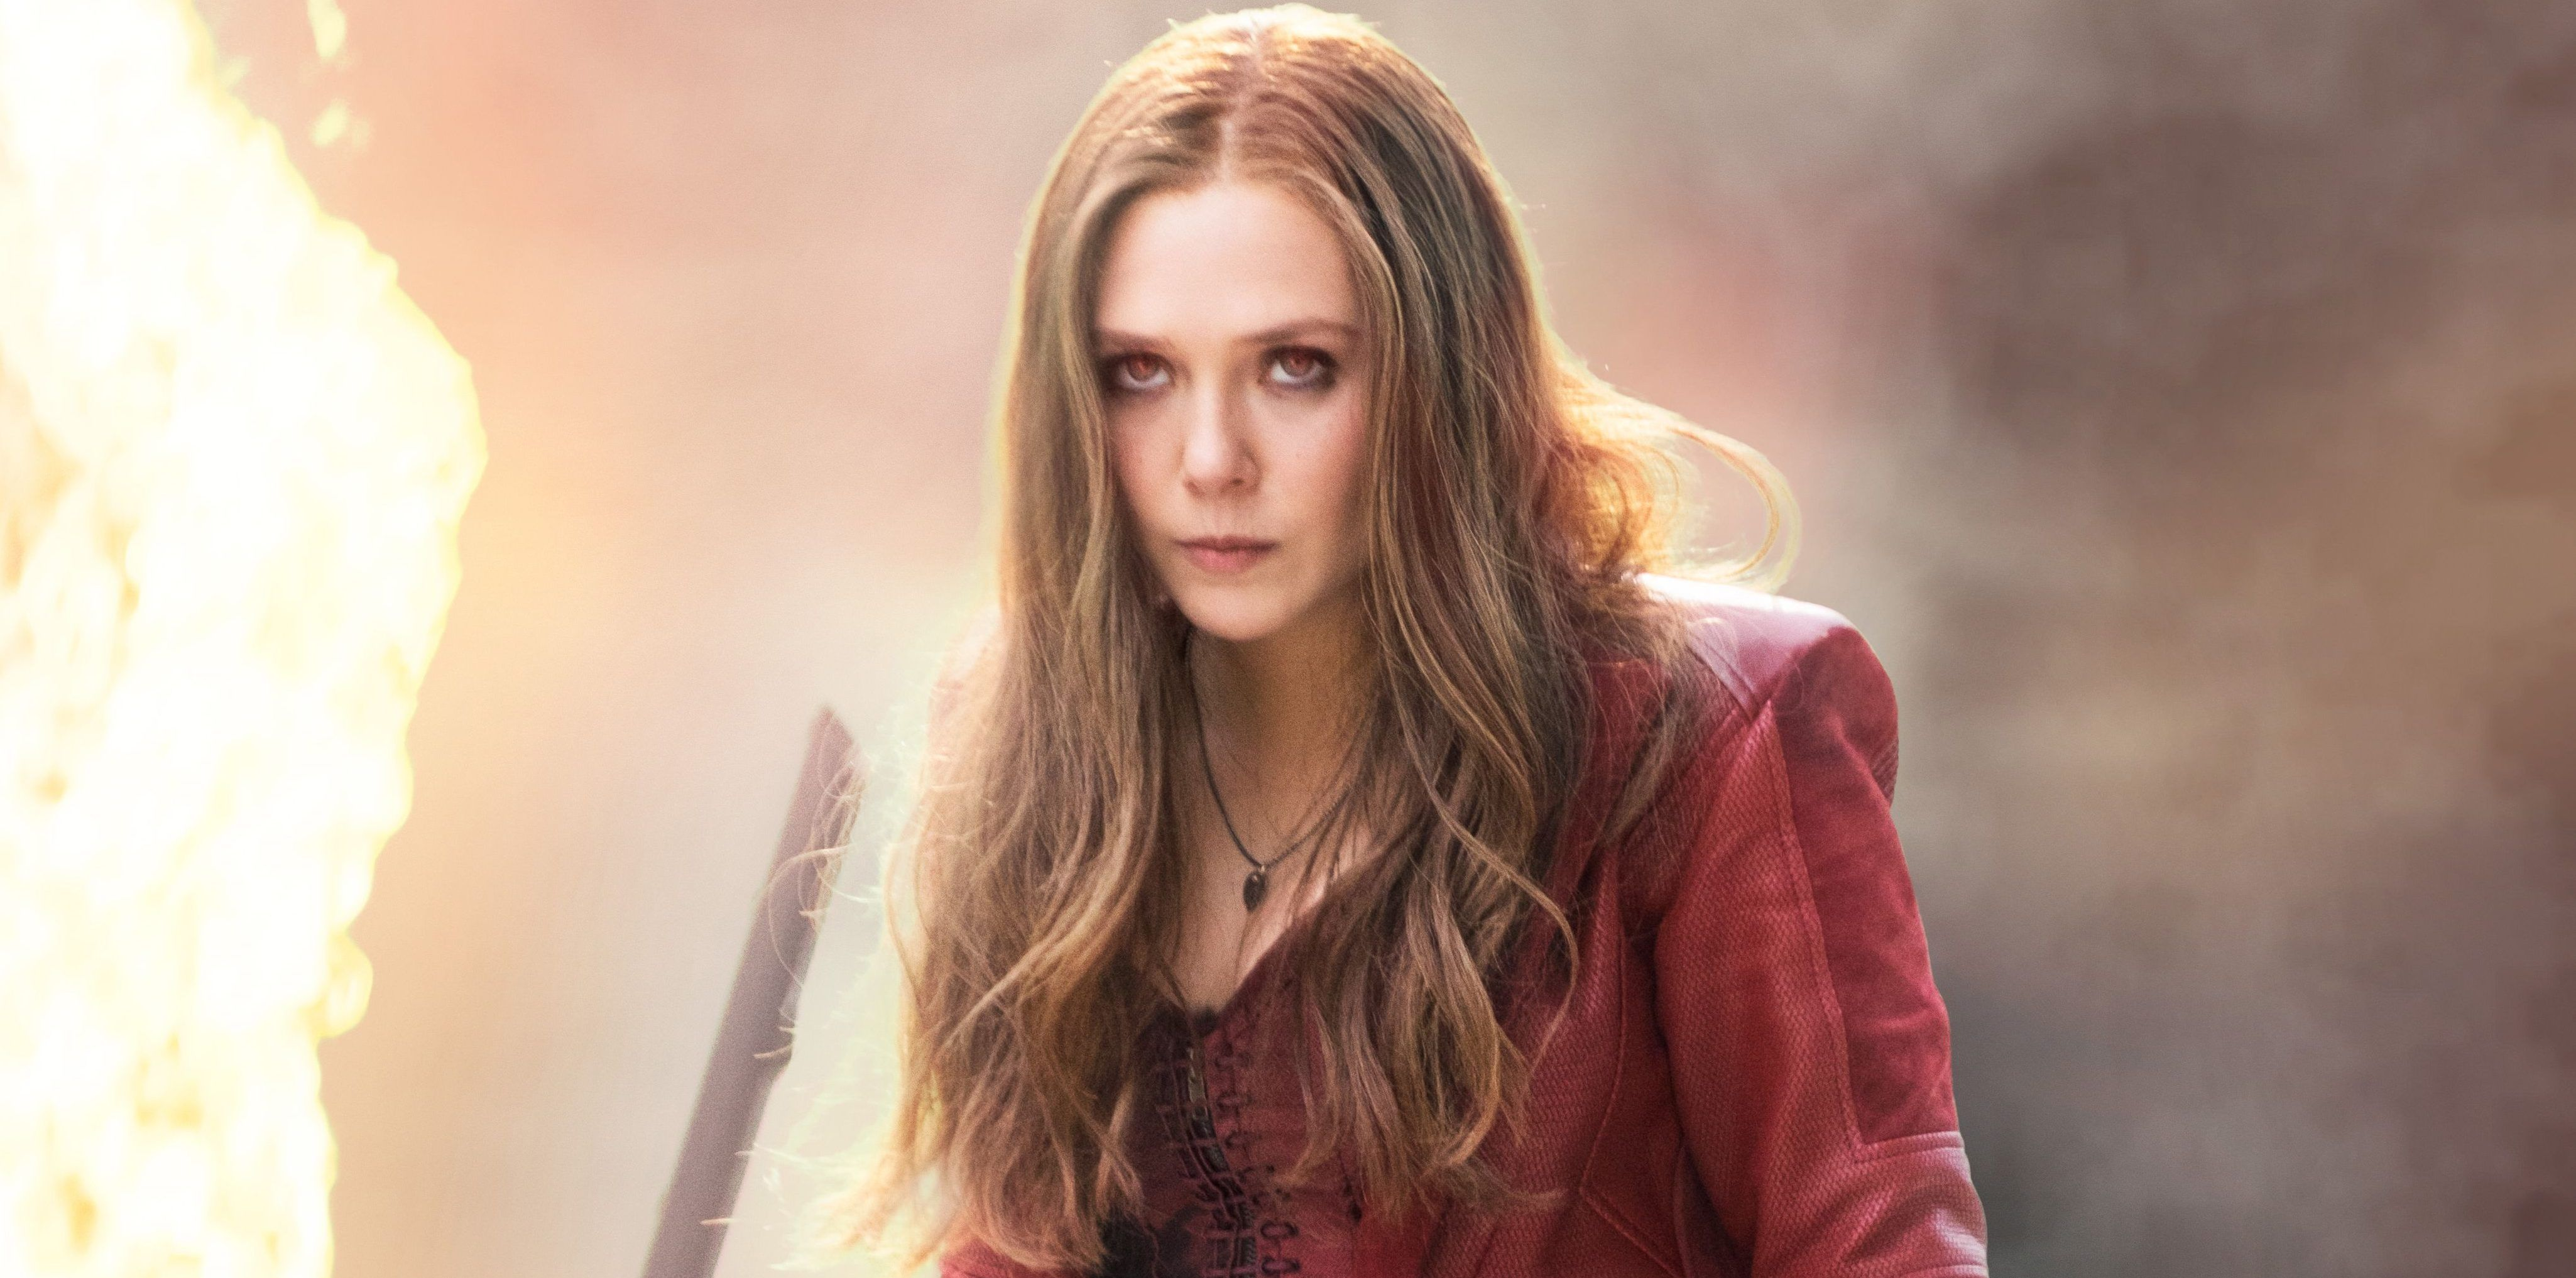 SDCC 2019: Scarlet Witch Has a Role To Play In Doctor Strange Sequel